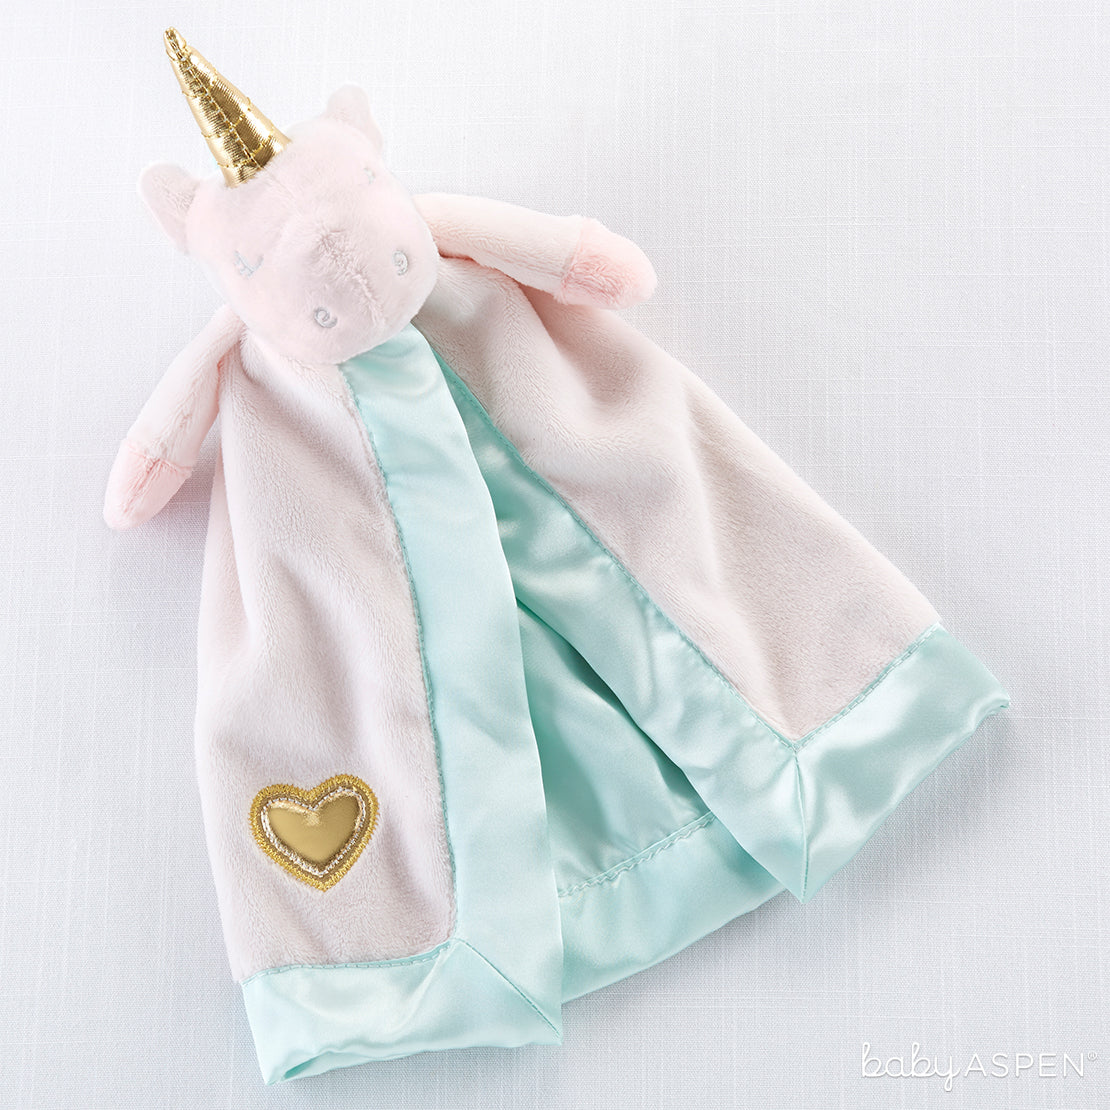 Unicorn Plush Rattle Lovie | Magical Unicorn Themed Baby Gifts | Baby Aspen